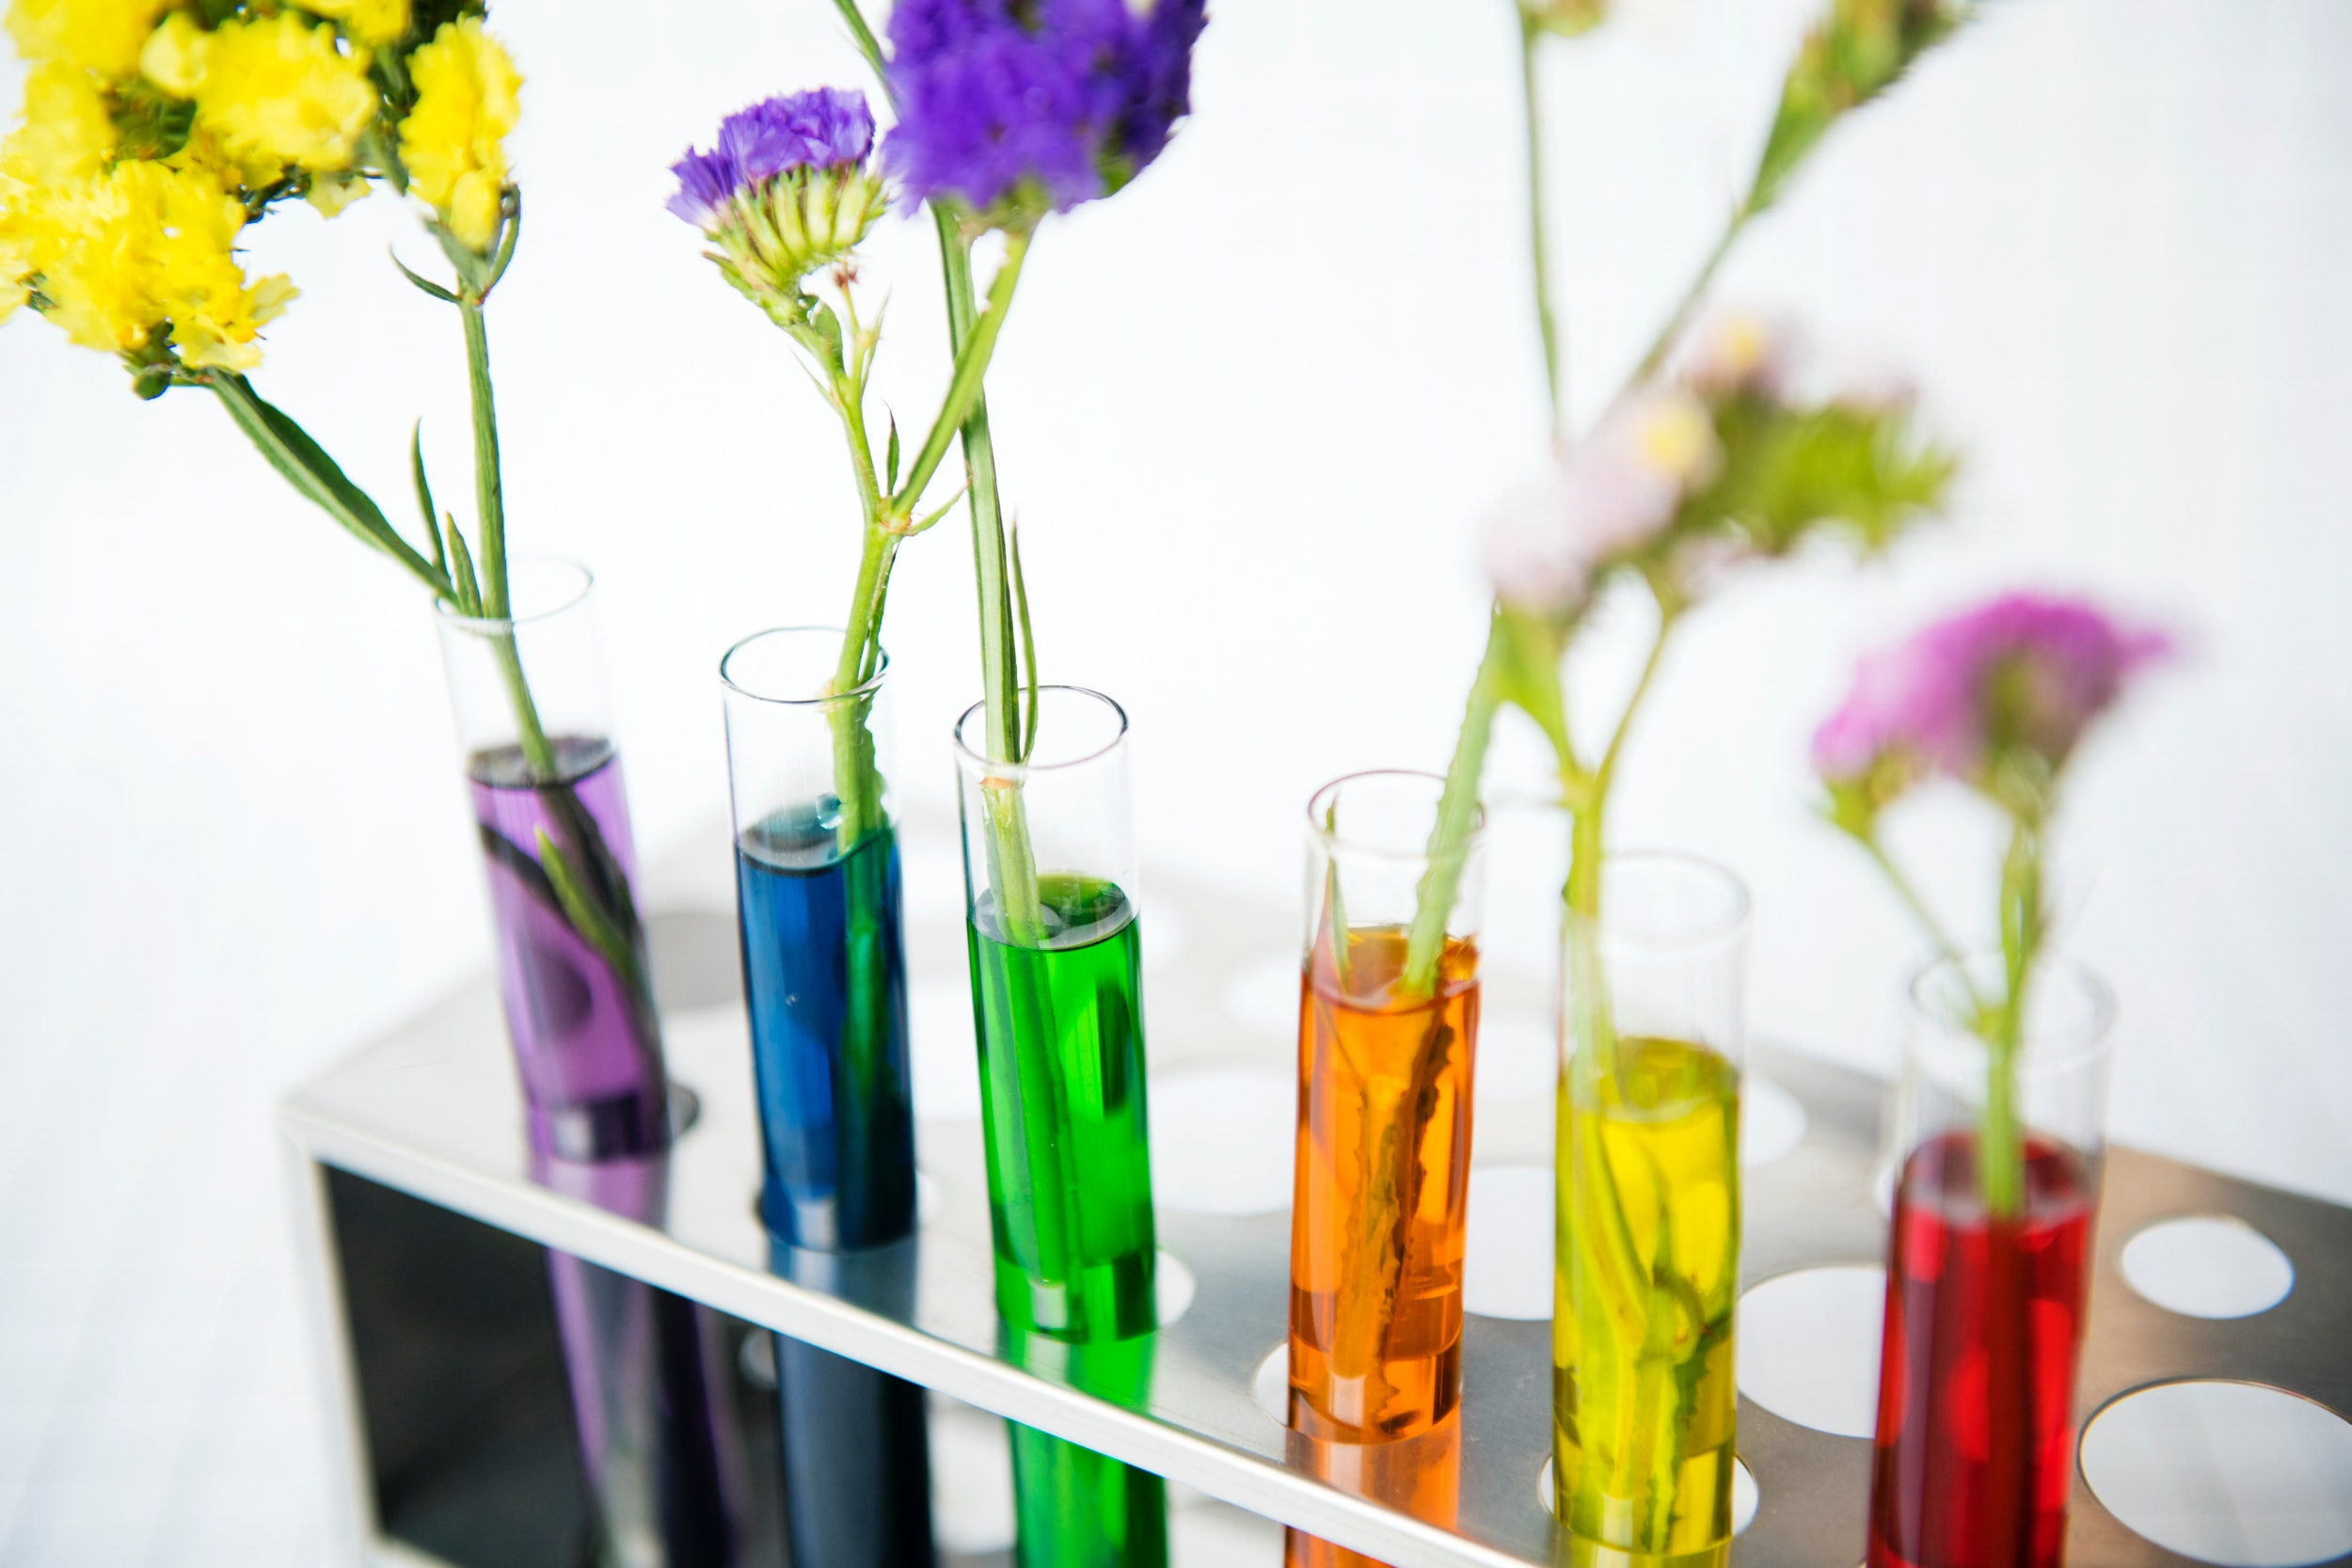 Fine arts degree problem solving creatively through flowers on test tubes